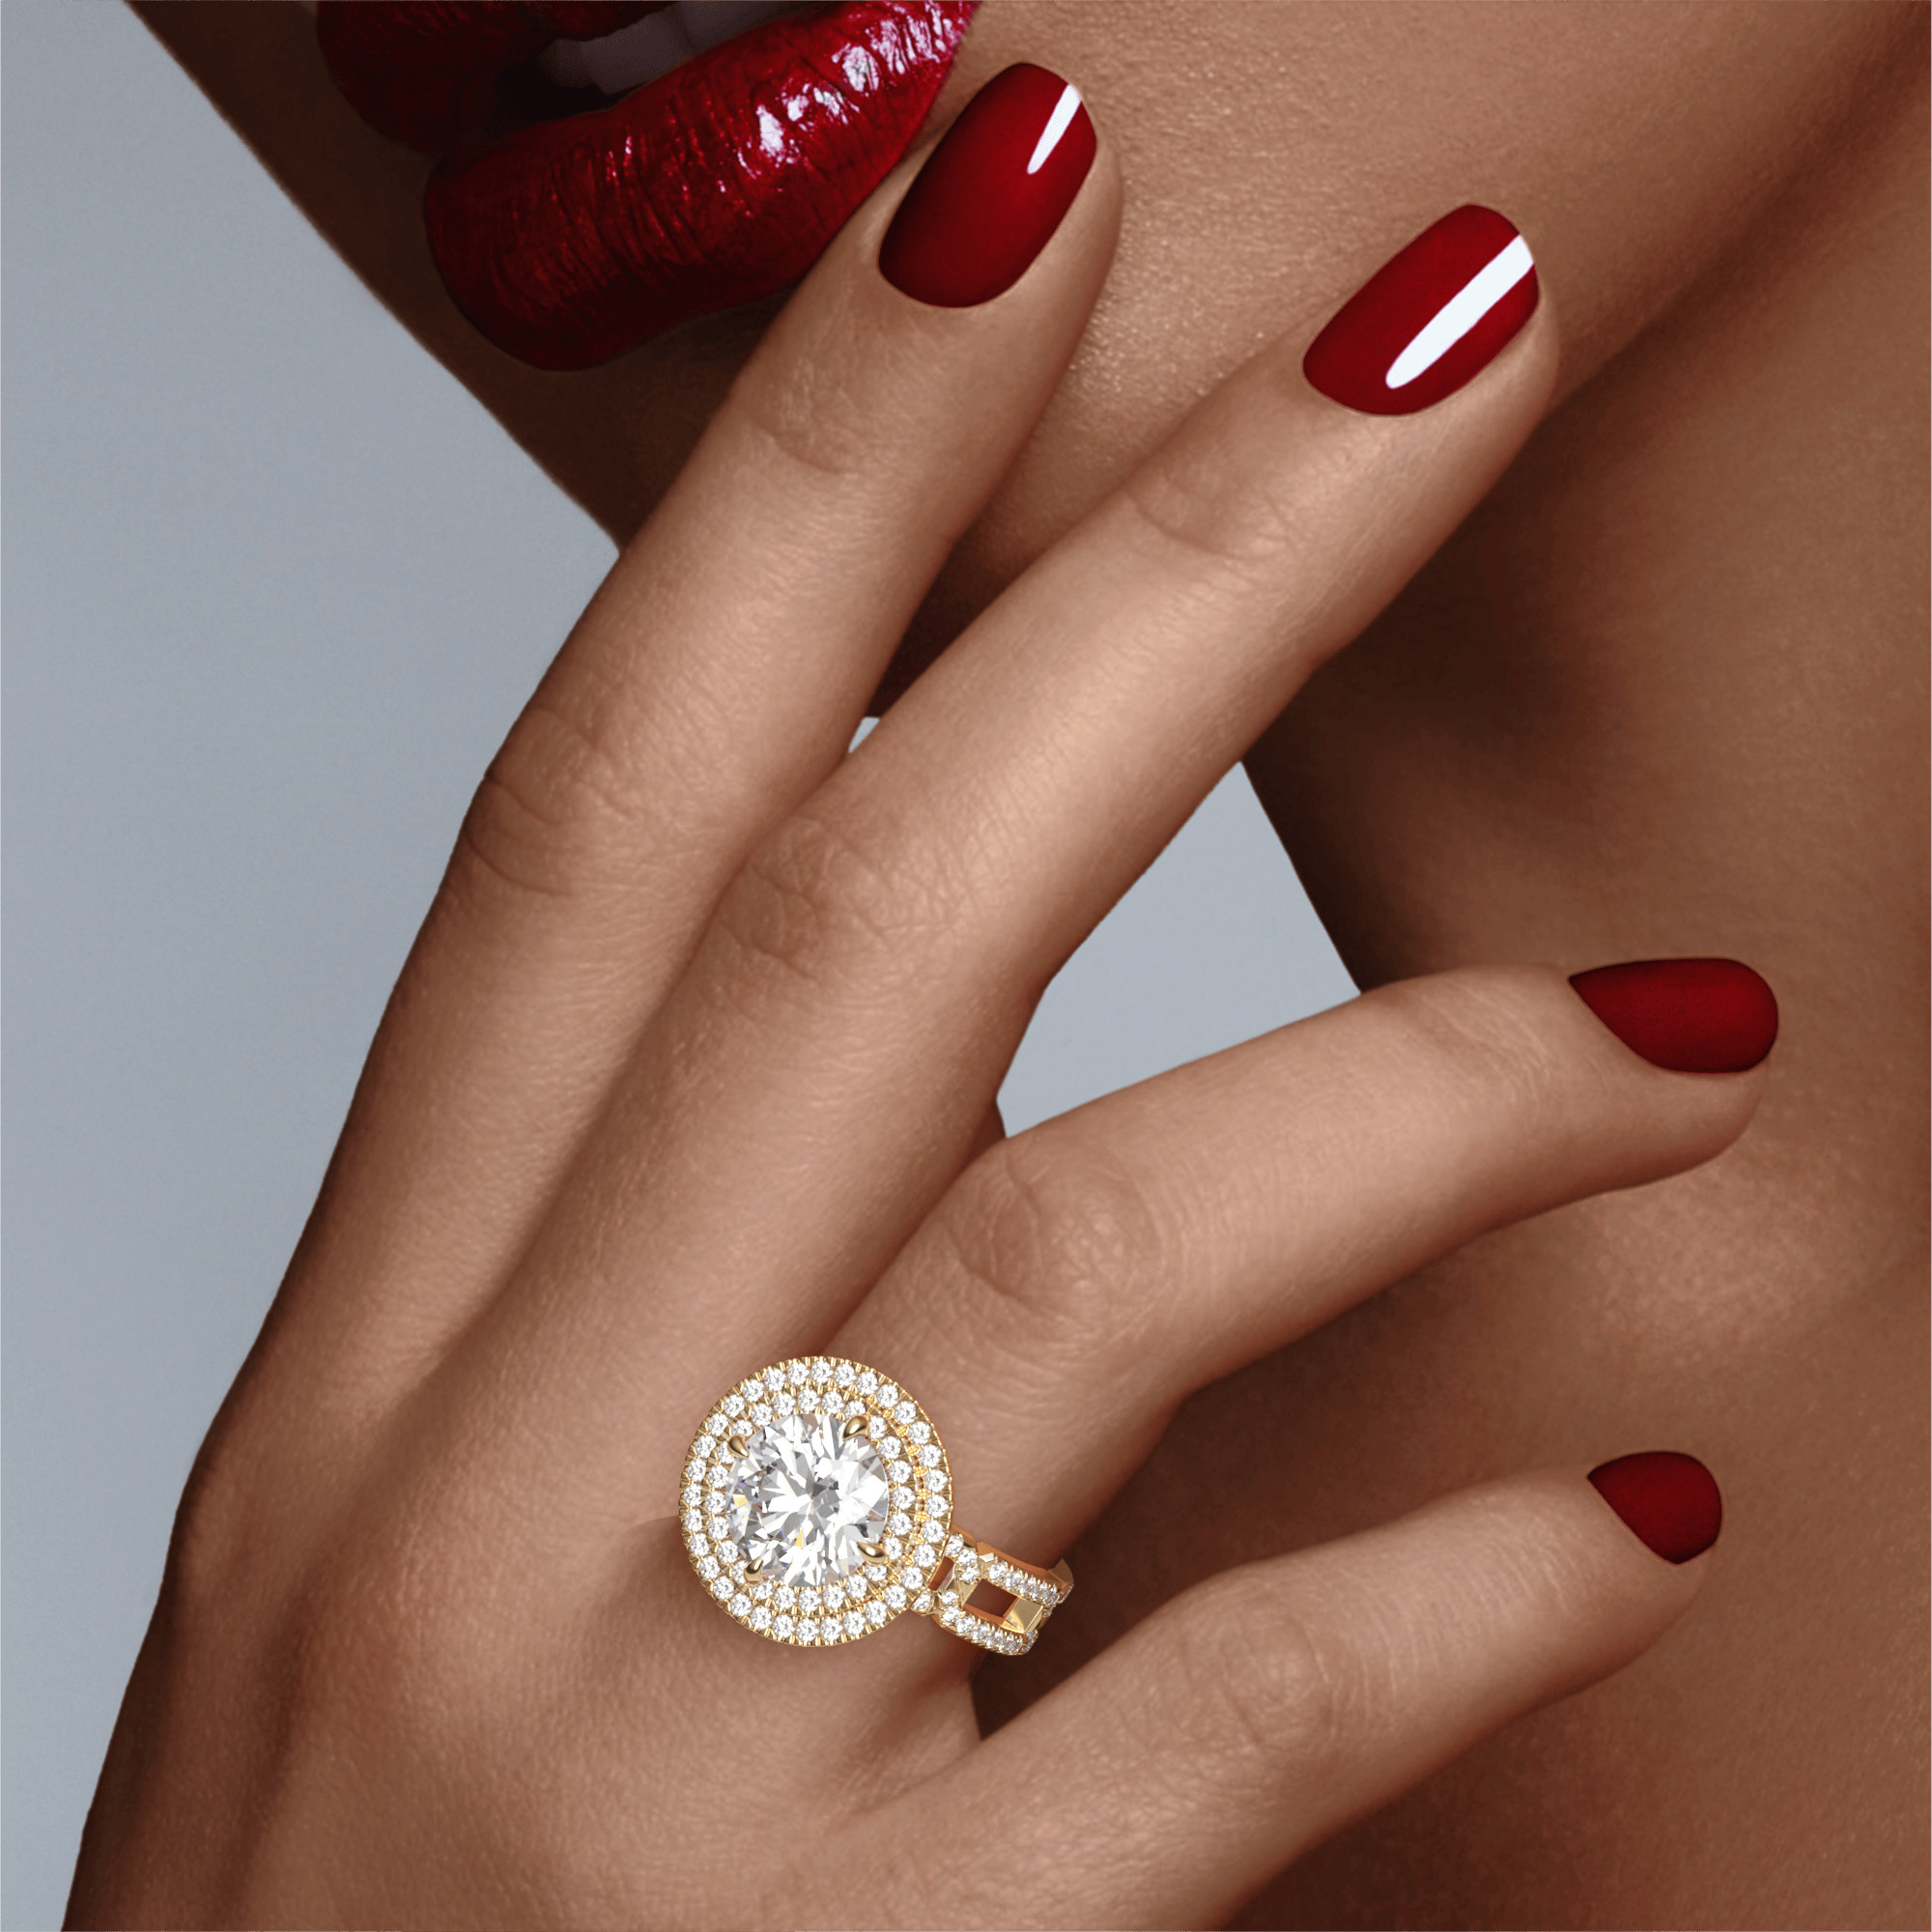 ROUND CUT, DOUBLE HALO SETTING, 8 PAVE LINKS, 18K YELLOW GOLD